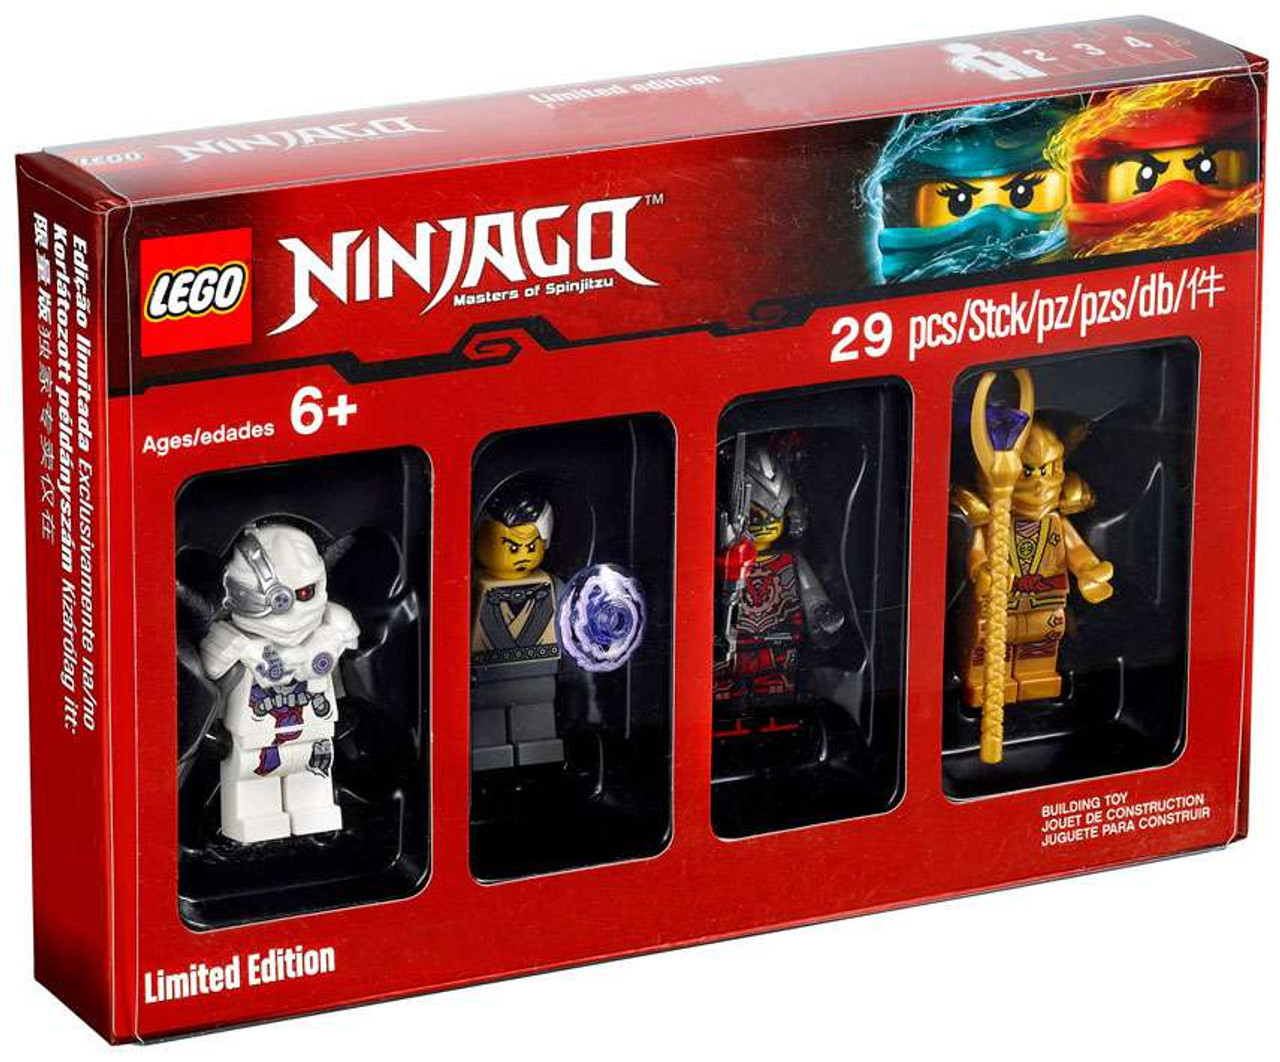 LEGO Ninjago Bricktober Ninjago Exclusive Minifigure Collection 4 ...